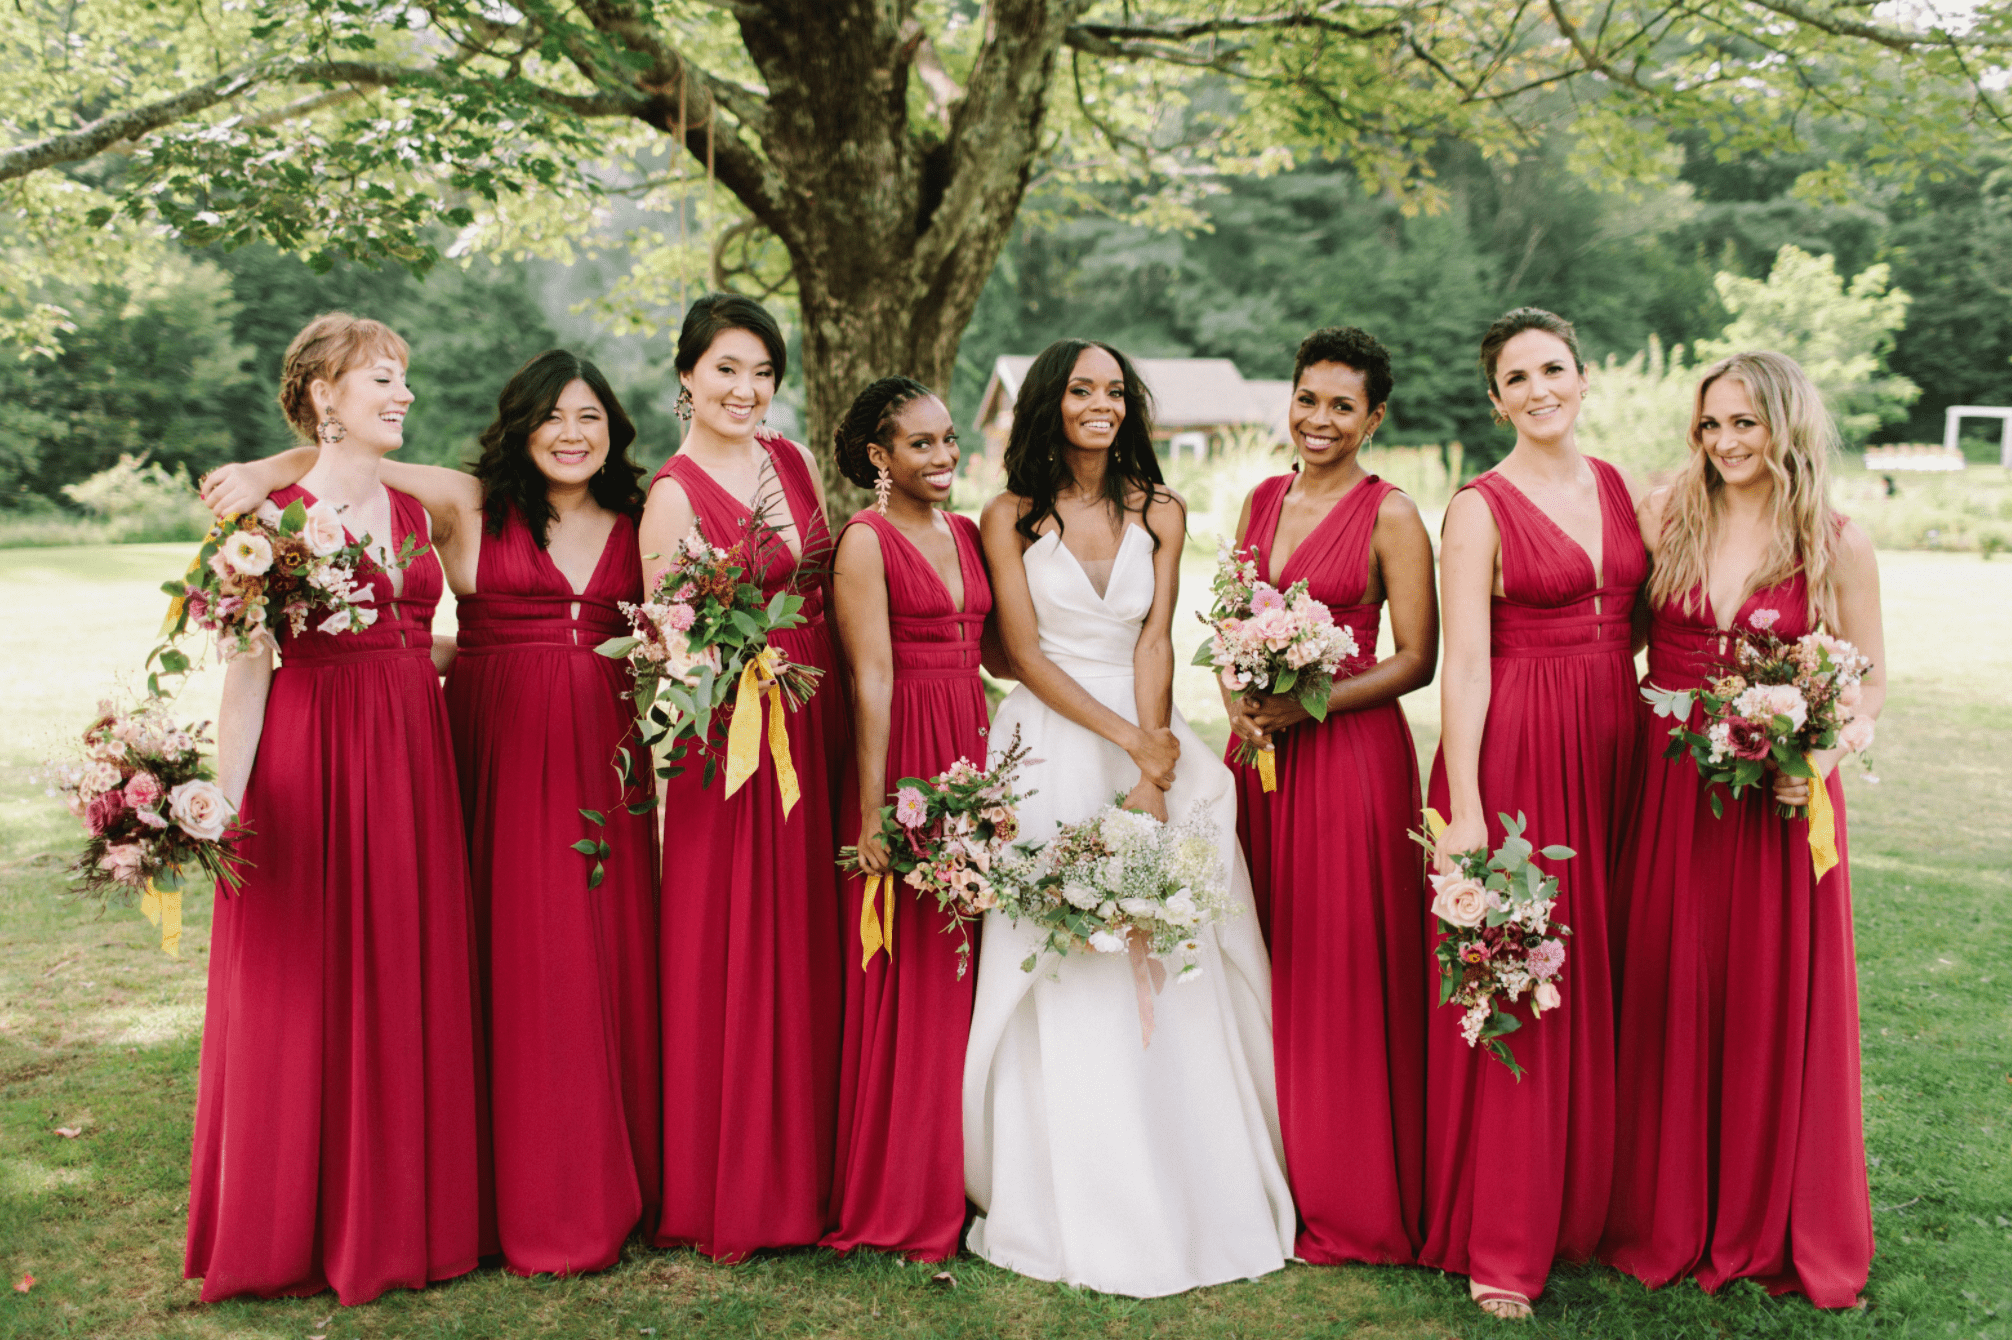 Bride with bridesmaids in red dreses